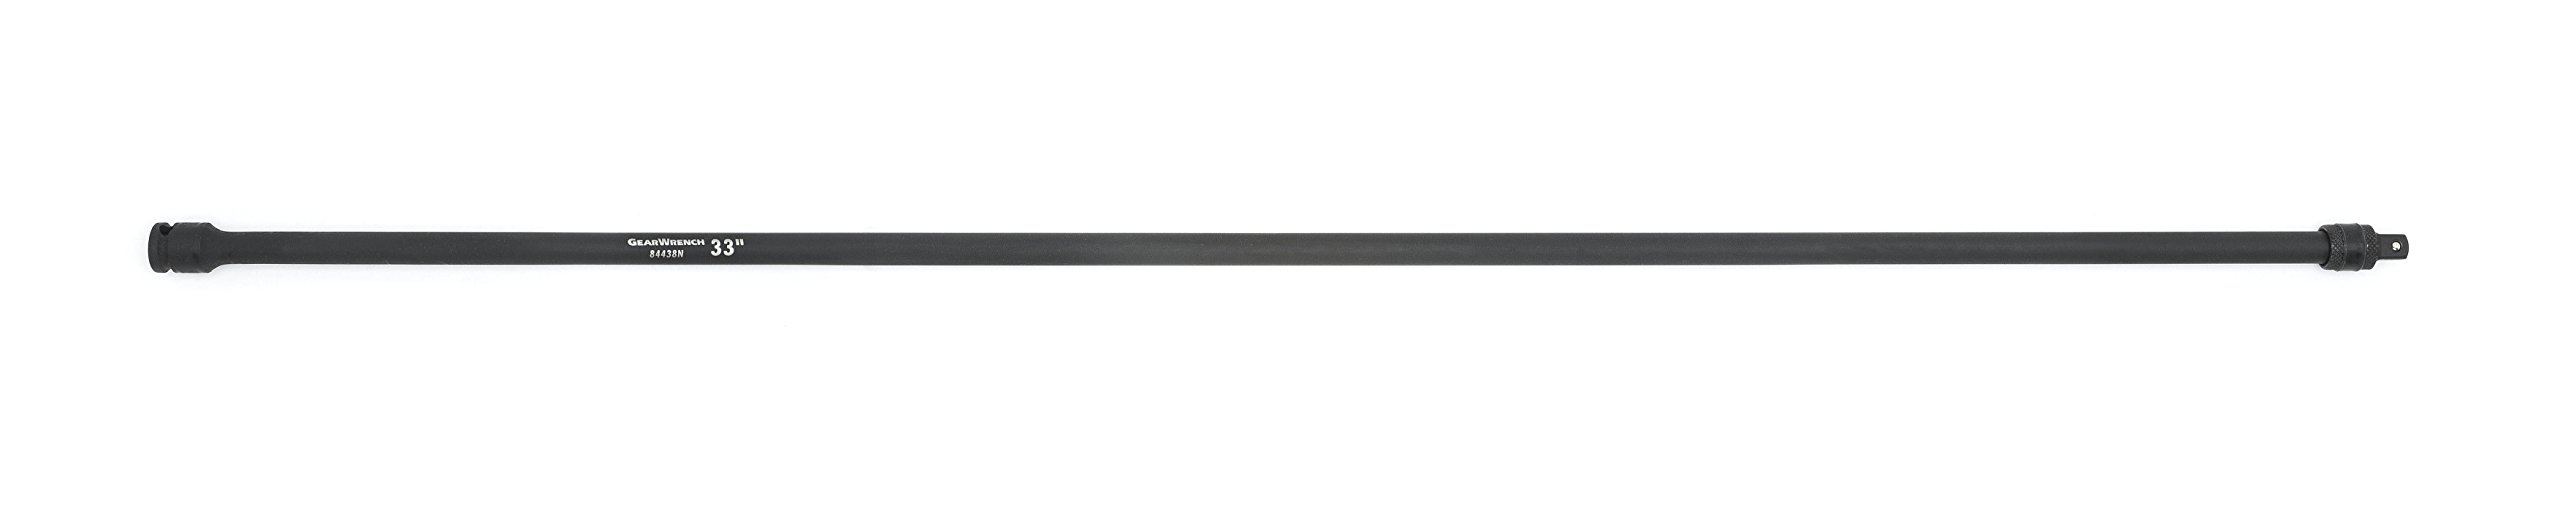 GEARWRENCH 3/8'' Drive Locking Impact Extension 33'' - 84438N by GearWrench